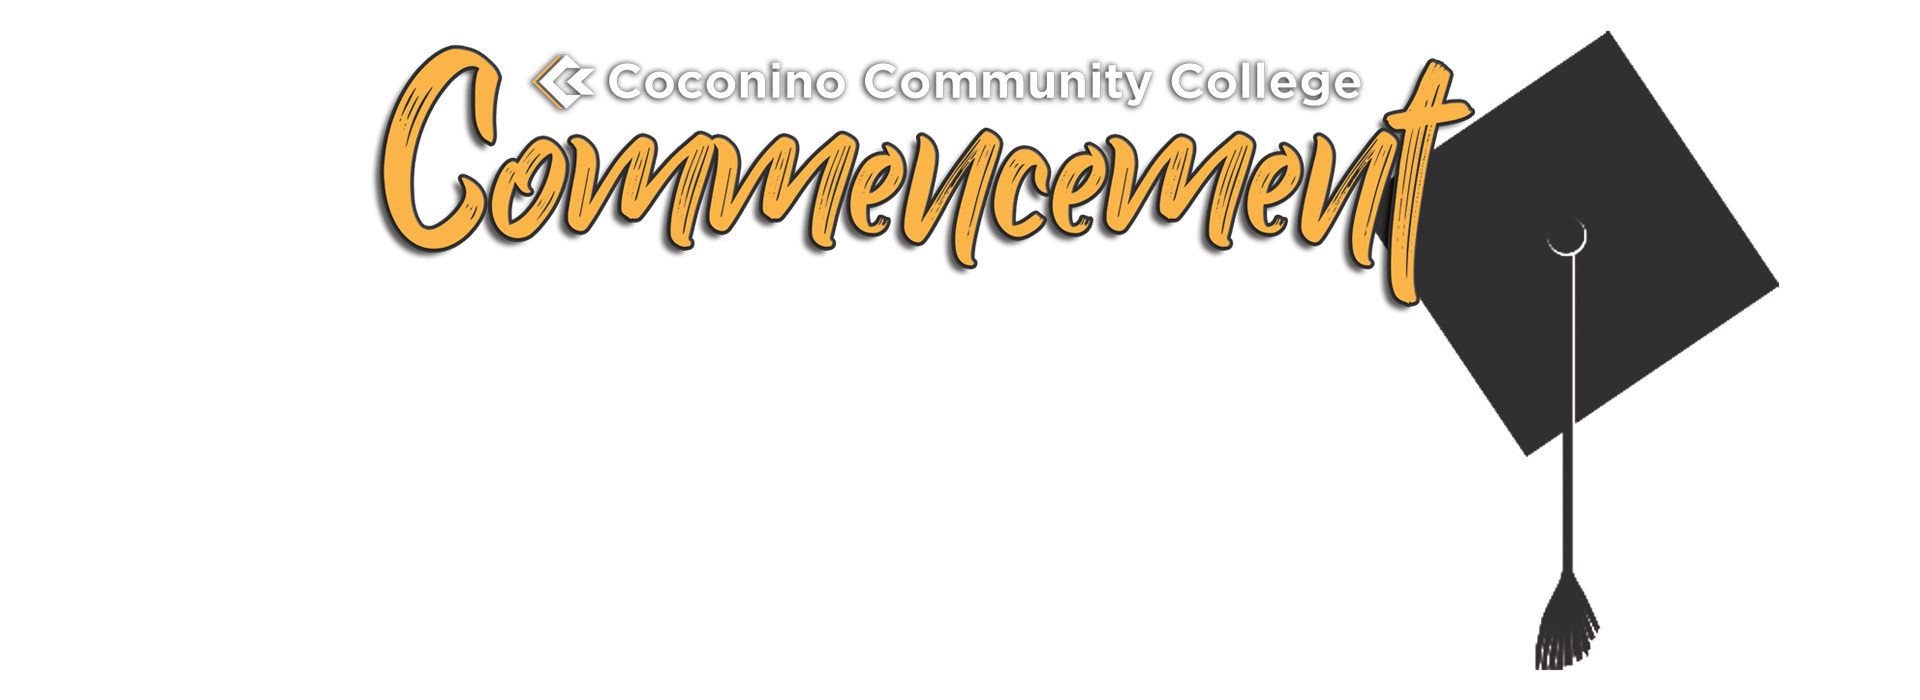 Coconino Community College Commencement